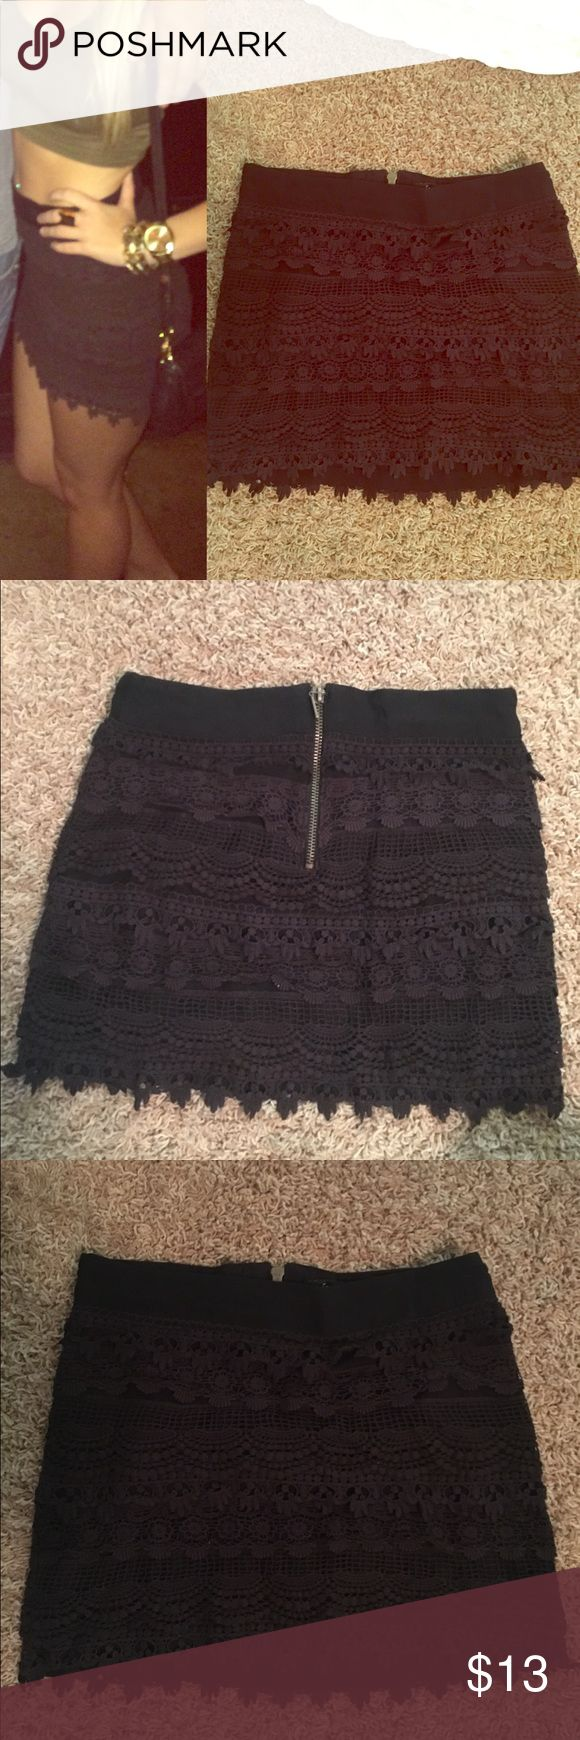 Black scalloped lace mini skirt! Black lace mini skirt. Super flattering & form fitting. Size small. Worn once. Not Kendal & Kylie, just using for exposure but I've seen something similar in their brand! Kendall & Kylie Skirts Mini